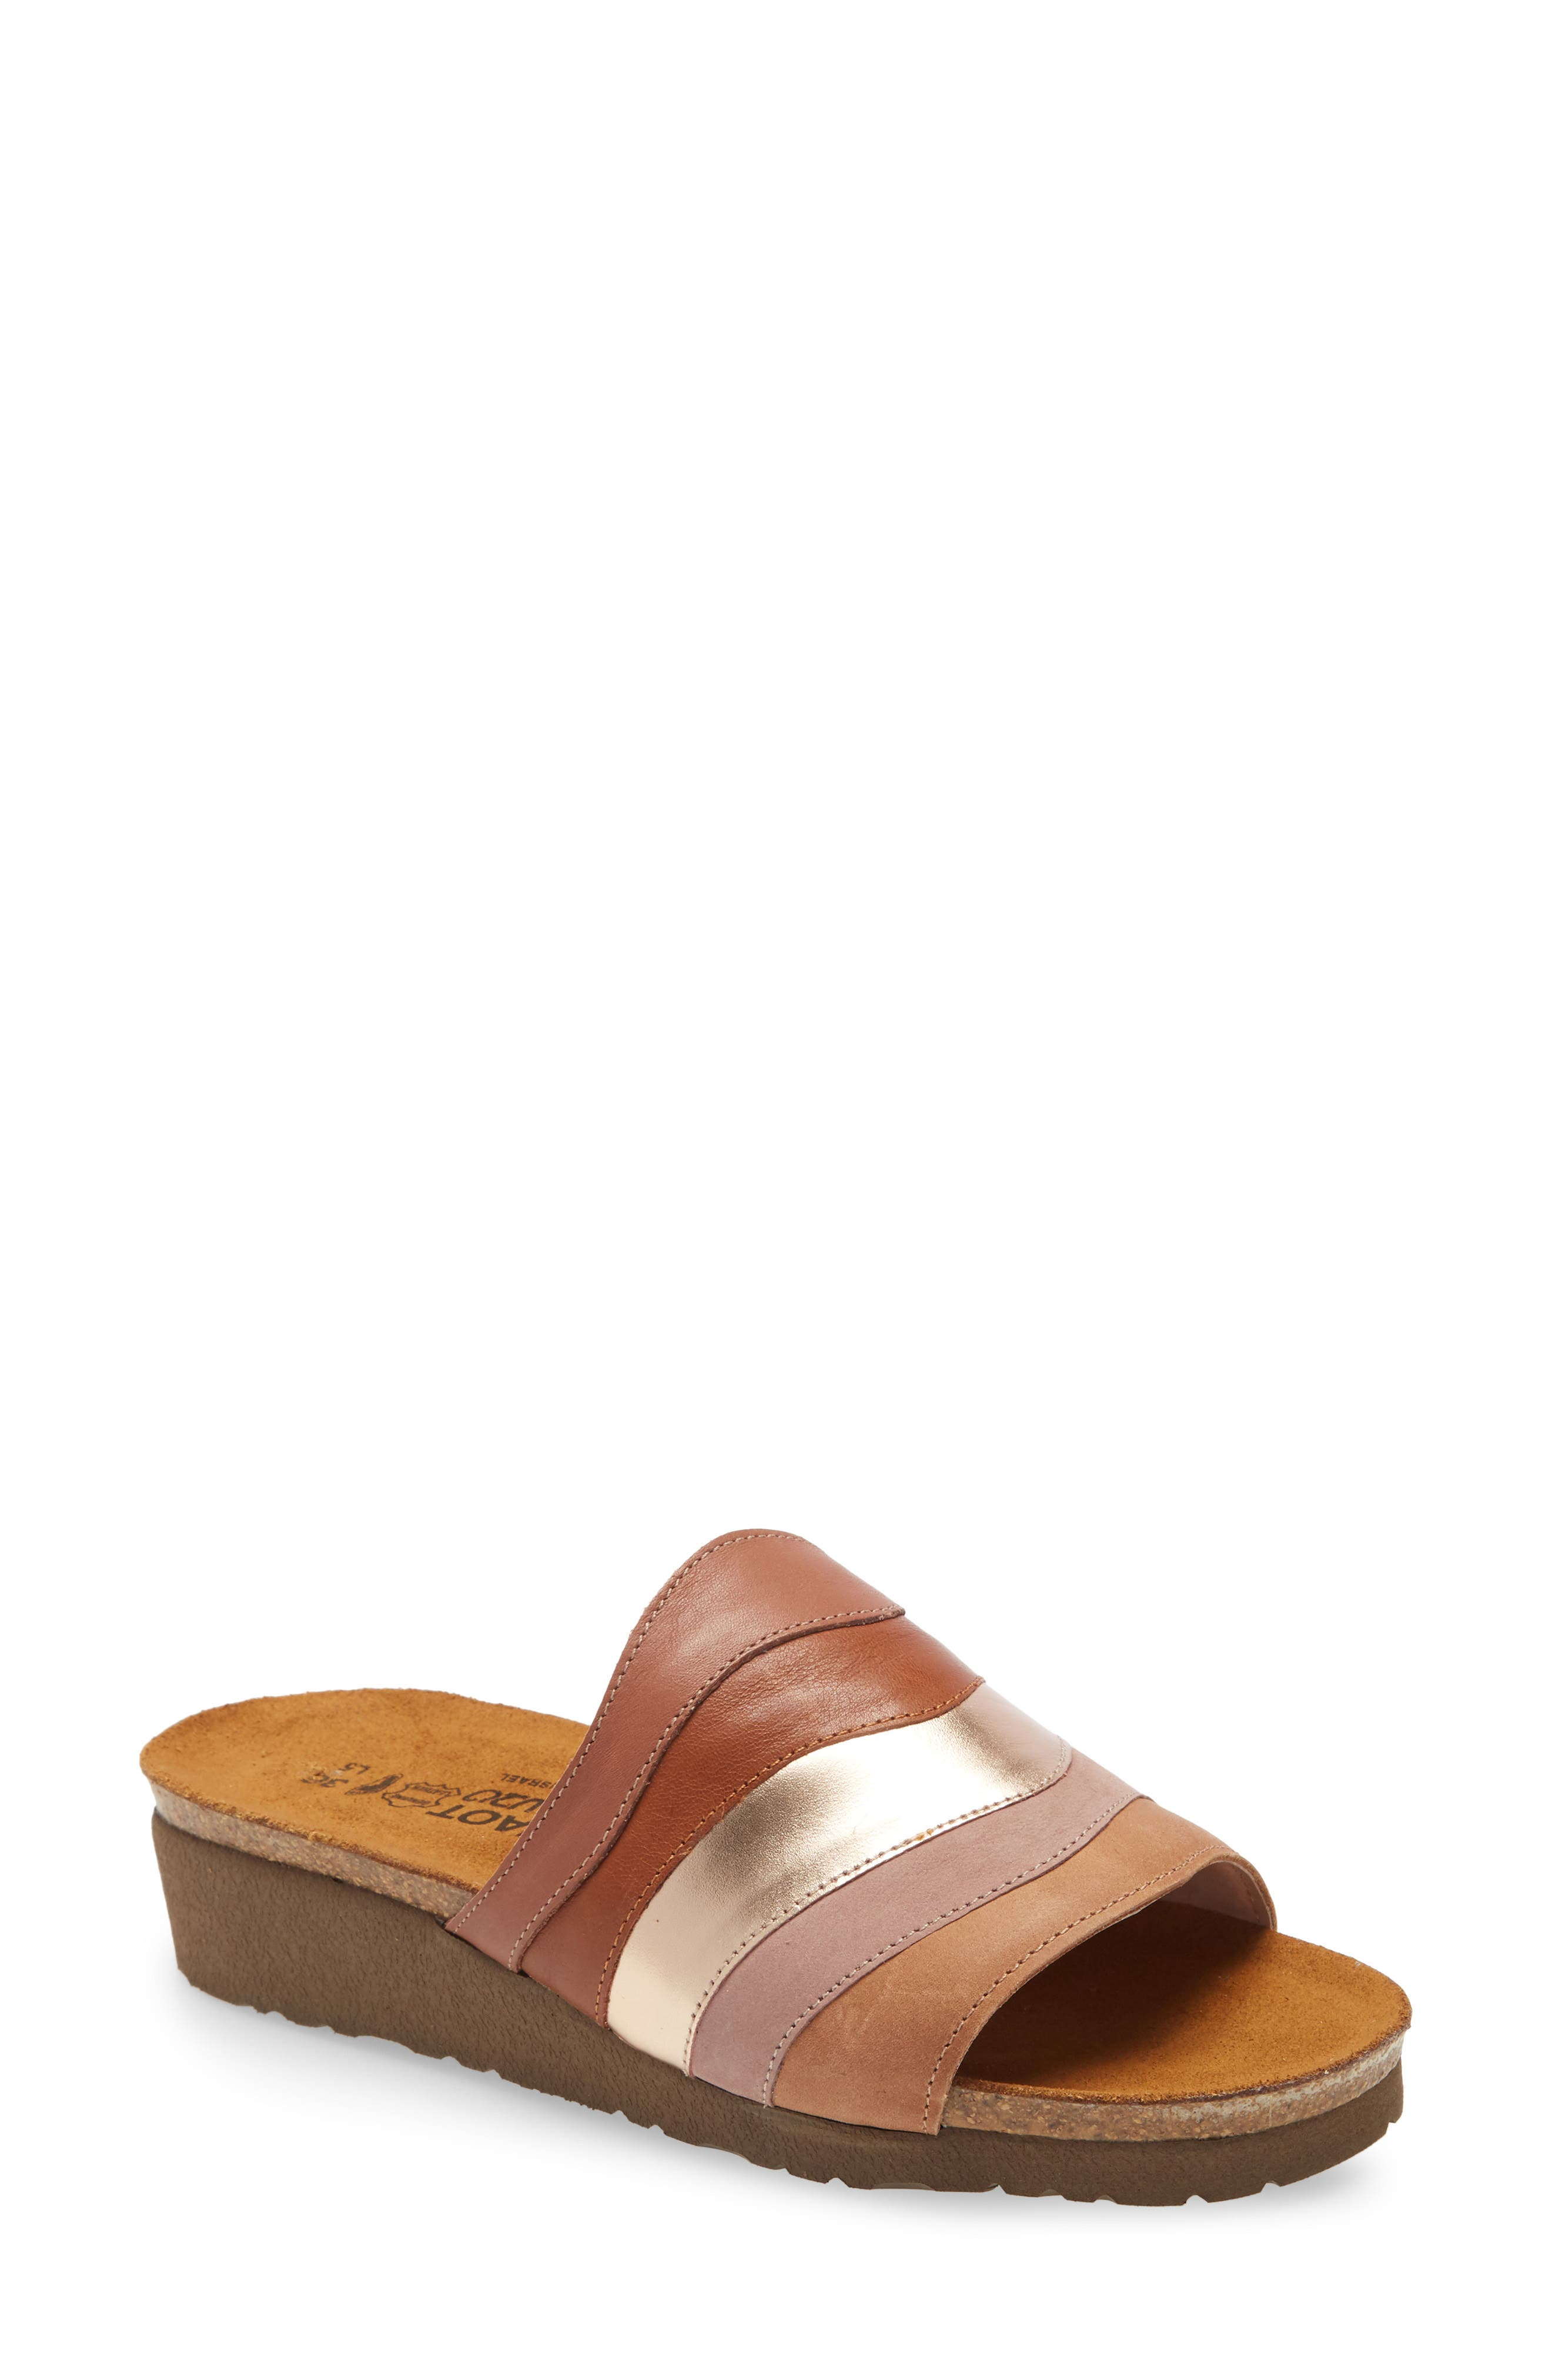 A flicker of metallic leather shines on the wavy multicolored vamp of a comfortable wedge slide with a supportive molded footbed that cushions every step. Style Name: Naot Portia Slide Sandal (Women). Style Number: 6003952. Available in stores.